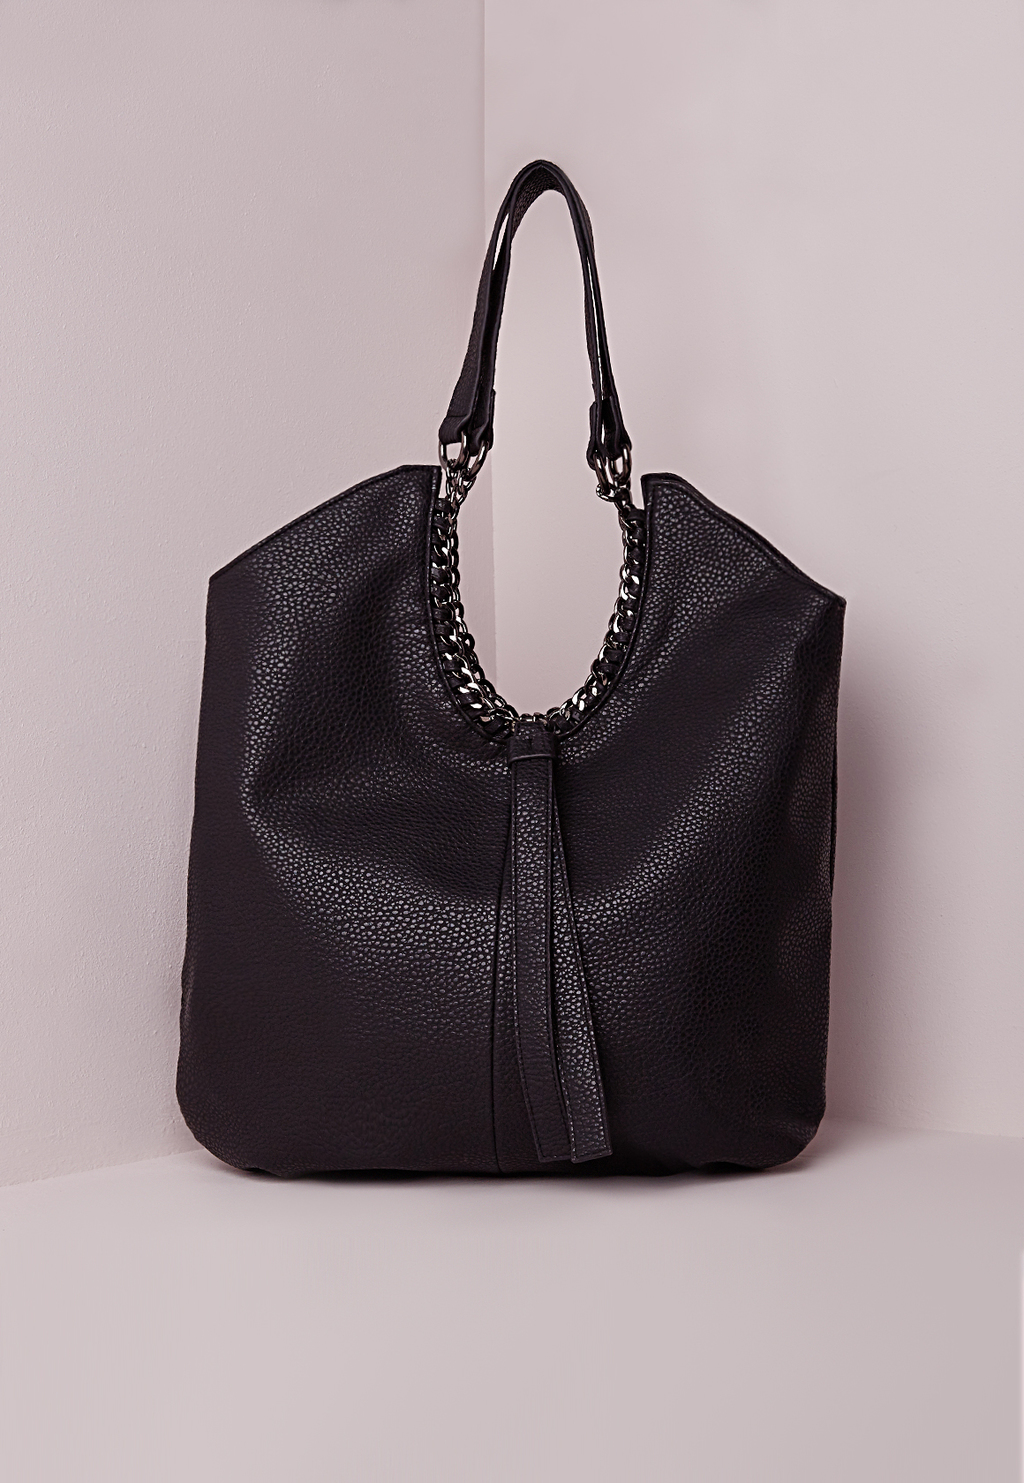 Chain Edge Slouch Bag Black, Black - predominant colour: black; occasions: casual, creative work; type of pattern: standard; style: shoulder; length: shoulder (tucks under arm); size: standard; material: faux leather; pattern: plain; finish: plain; embellishment: chain/metal; season: s/s 2016